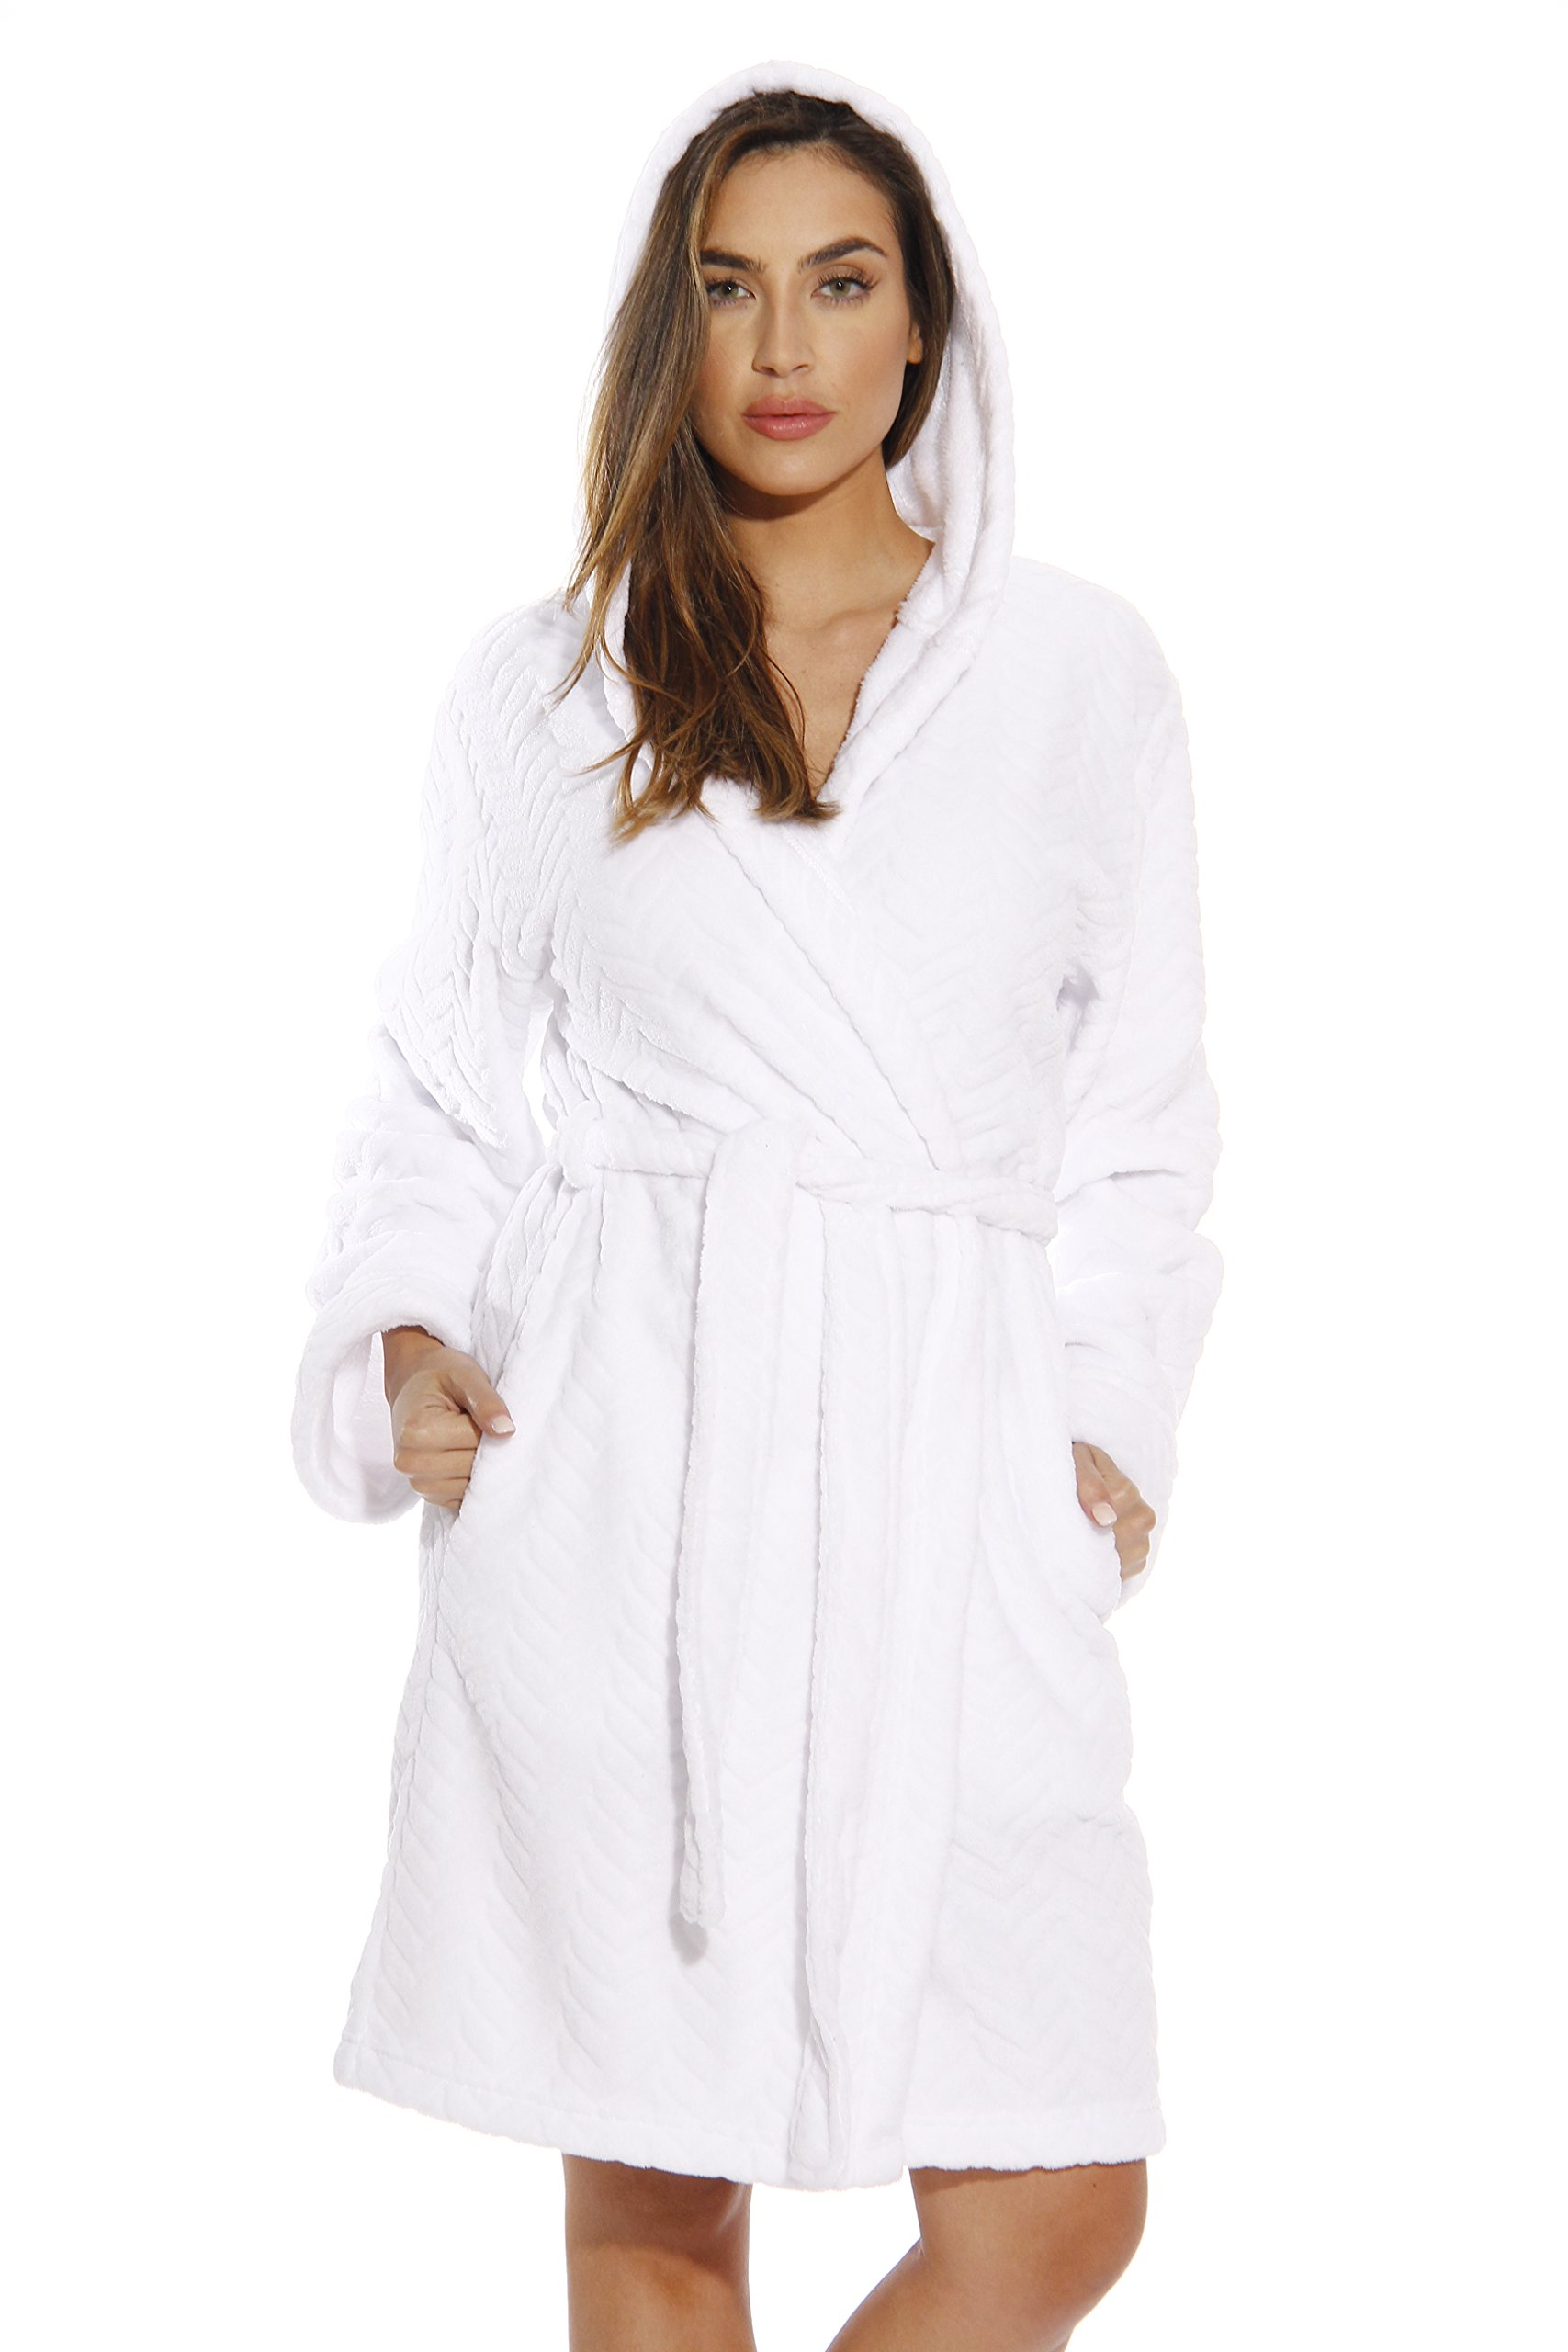 6341-White-3X Just Love Kimono Robe / Hooded Bath Robes for Women